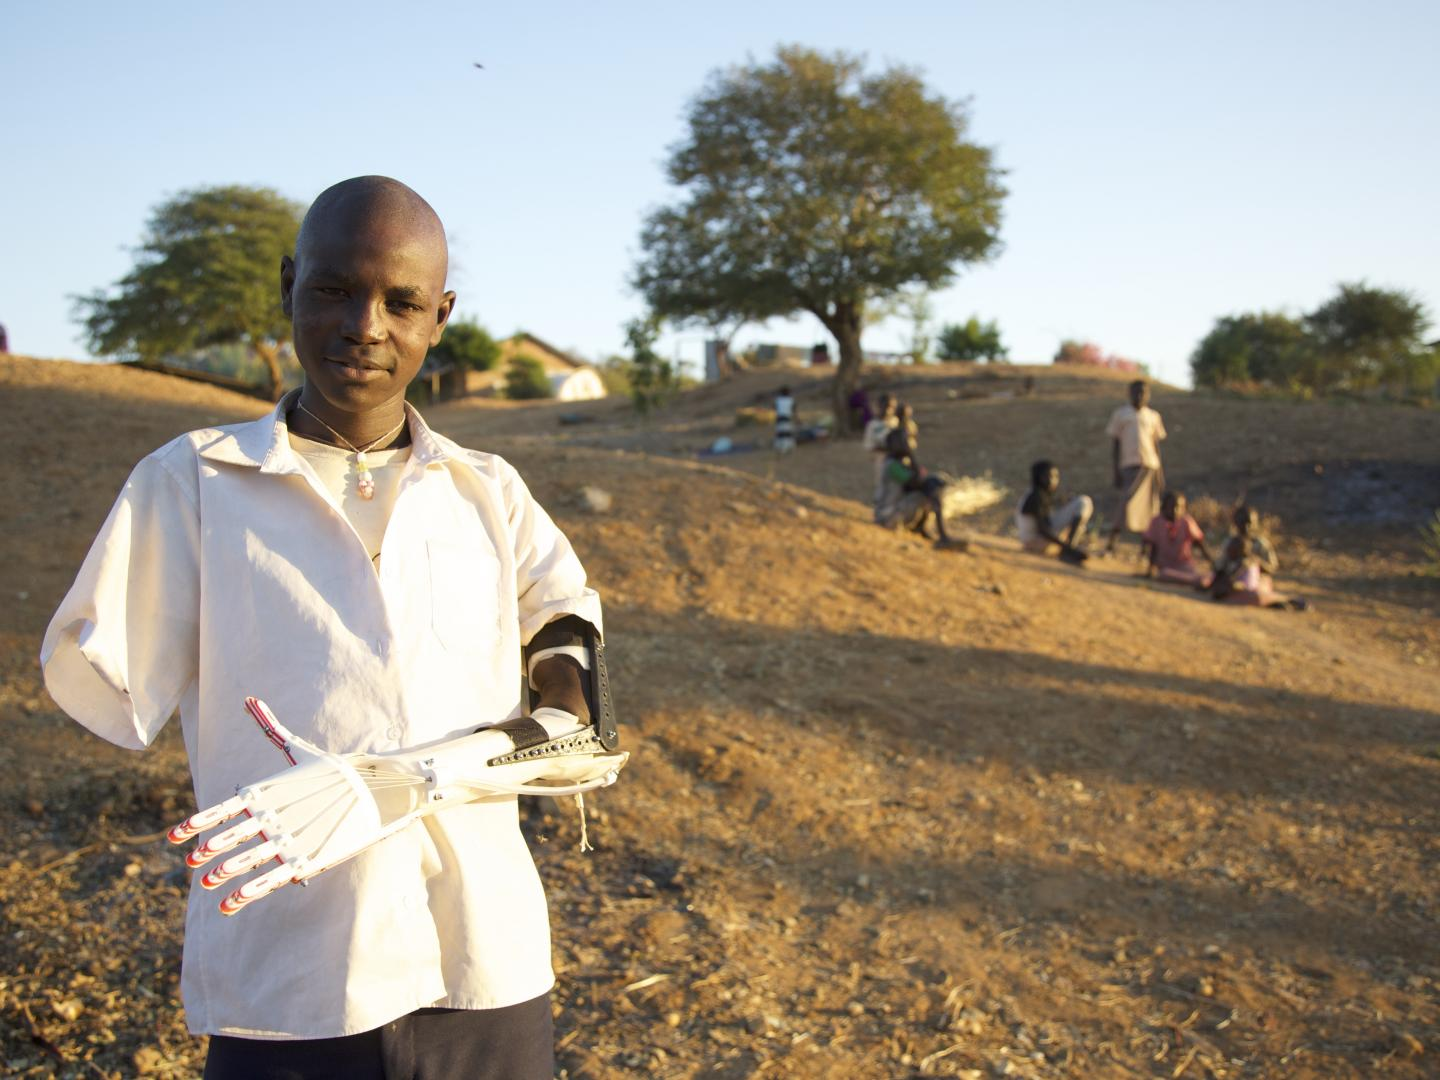 Project Daniel: 3-D Printing Prosthetic Arms for Children of War-Torn Sudan Thumbnail